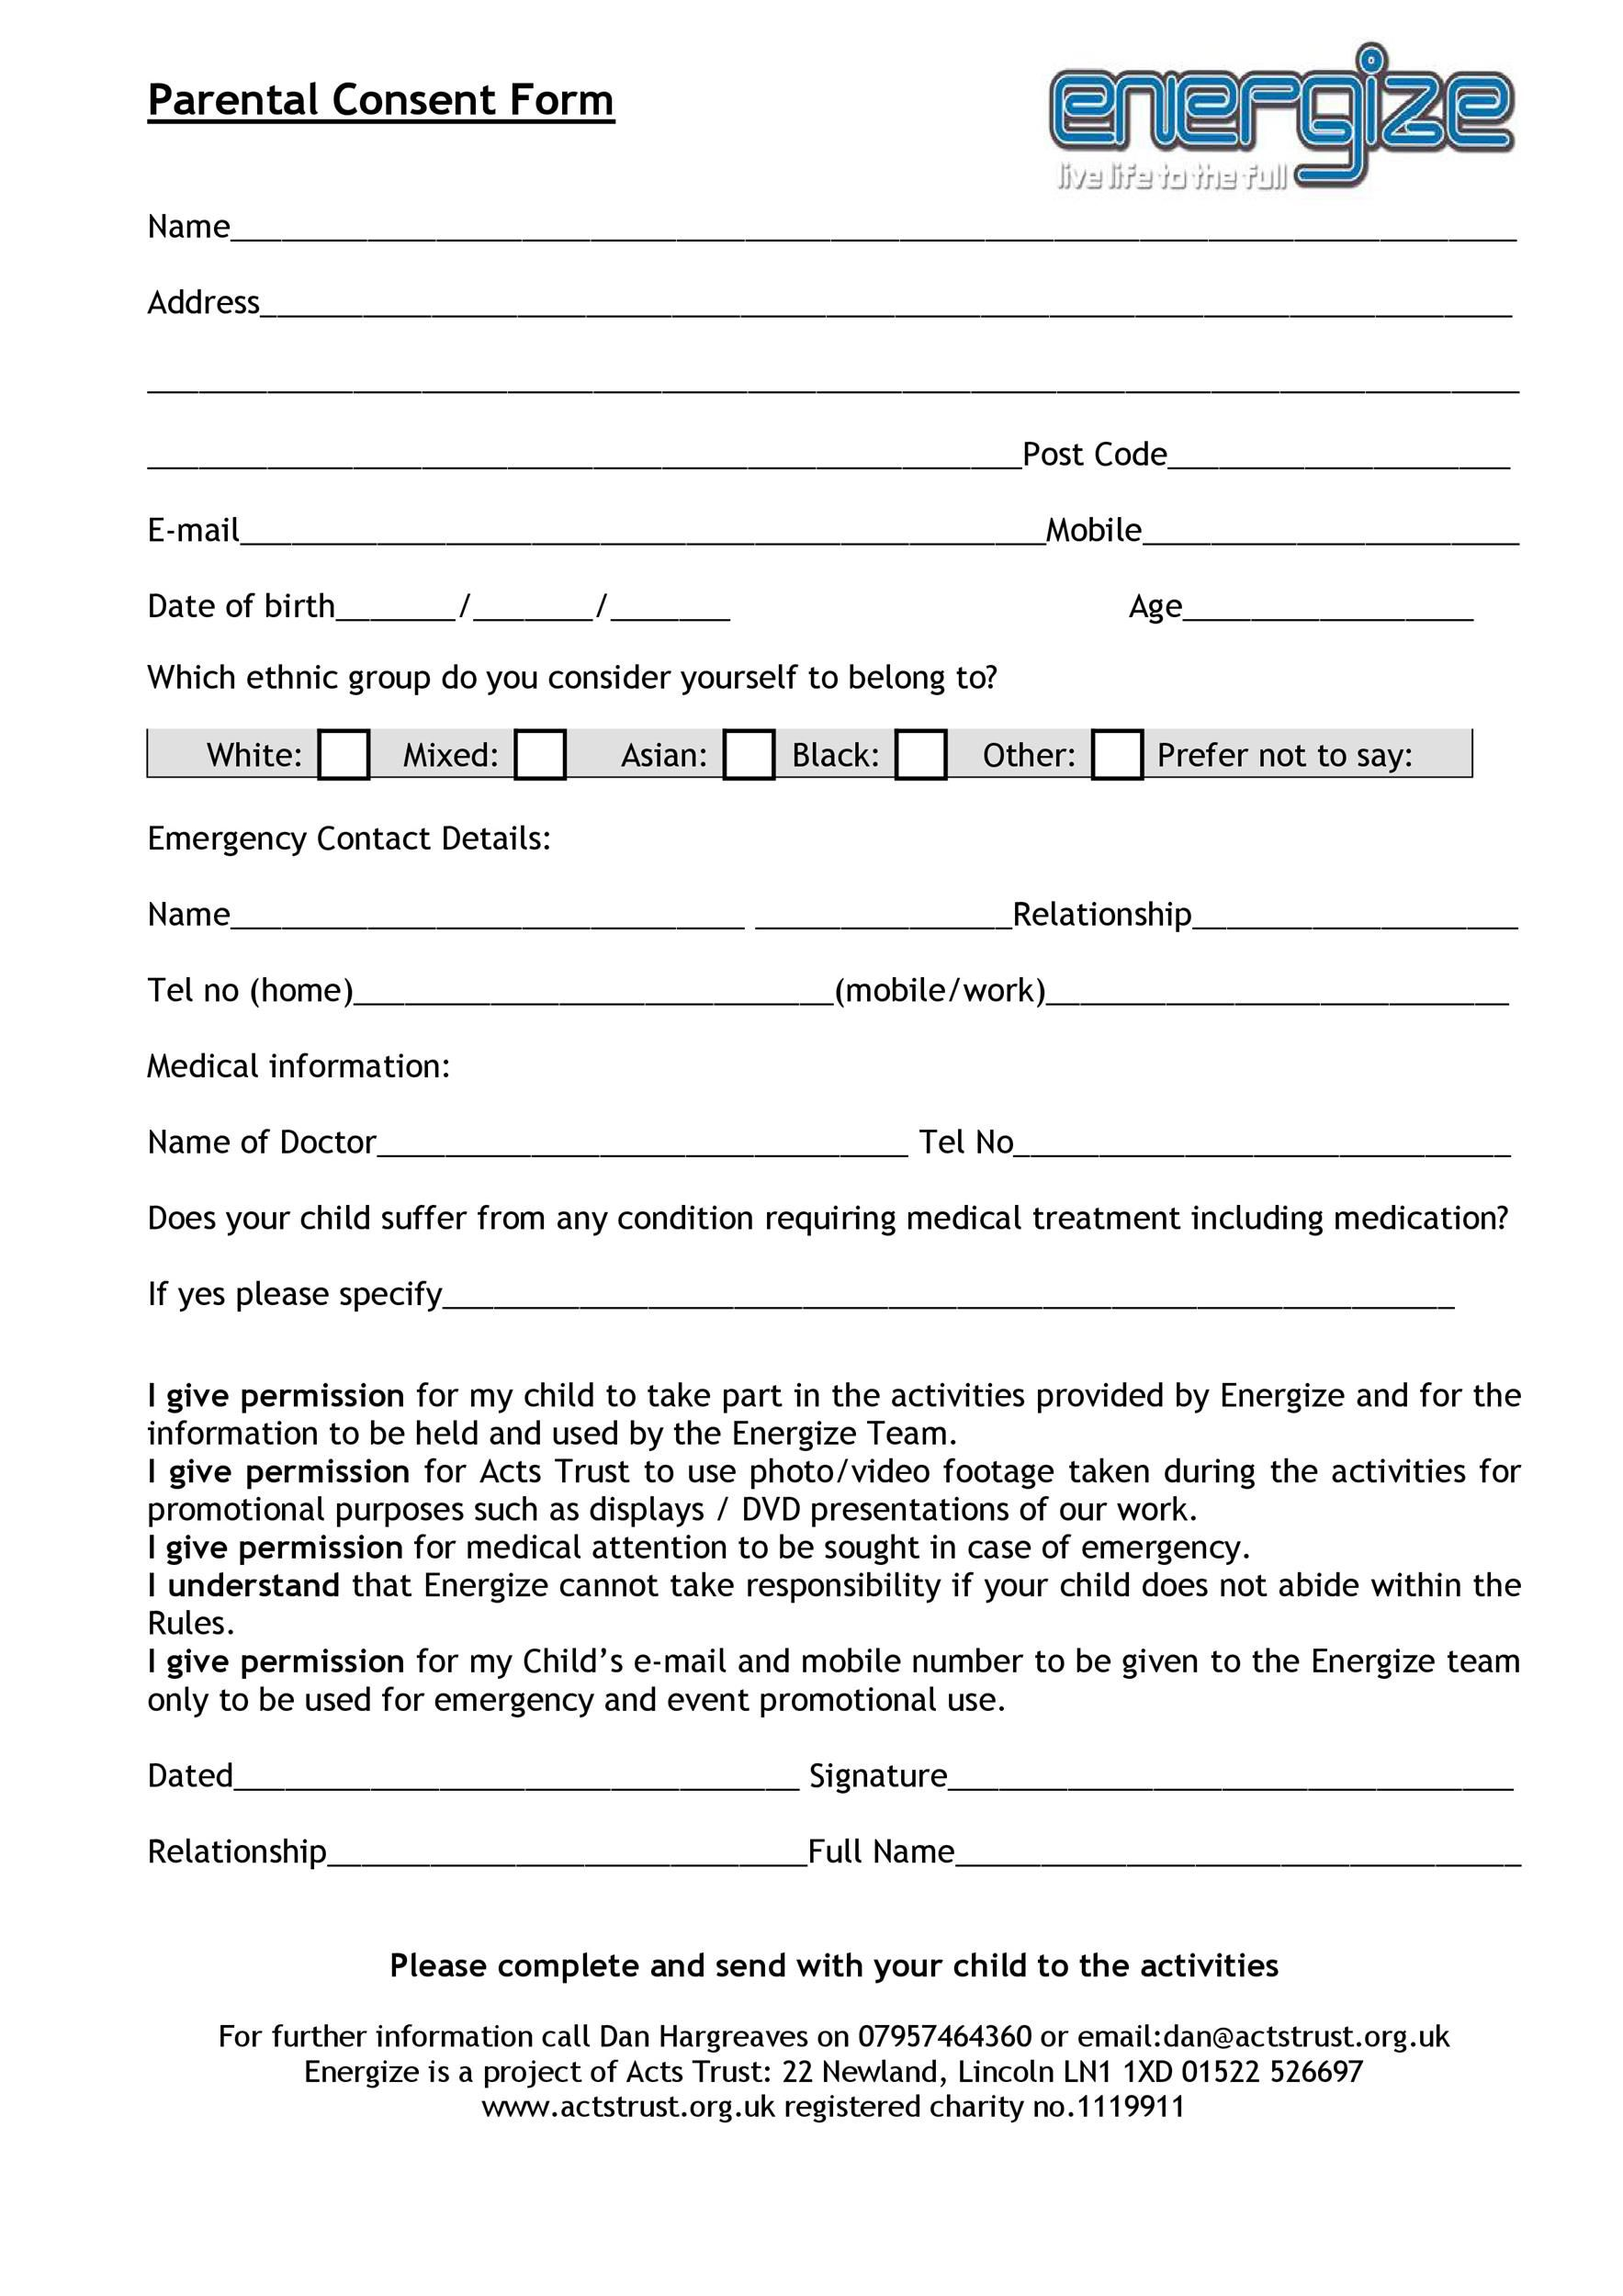 007 Wonderful Free Parental Medical Consent Form Template Design Full